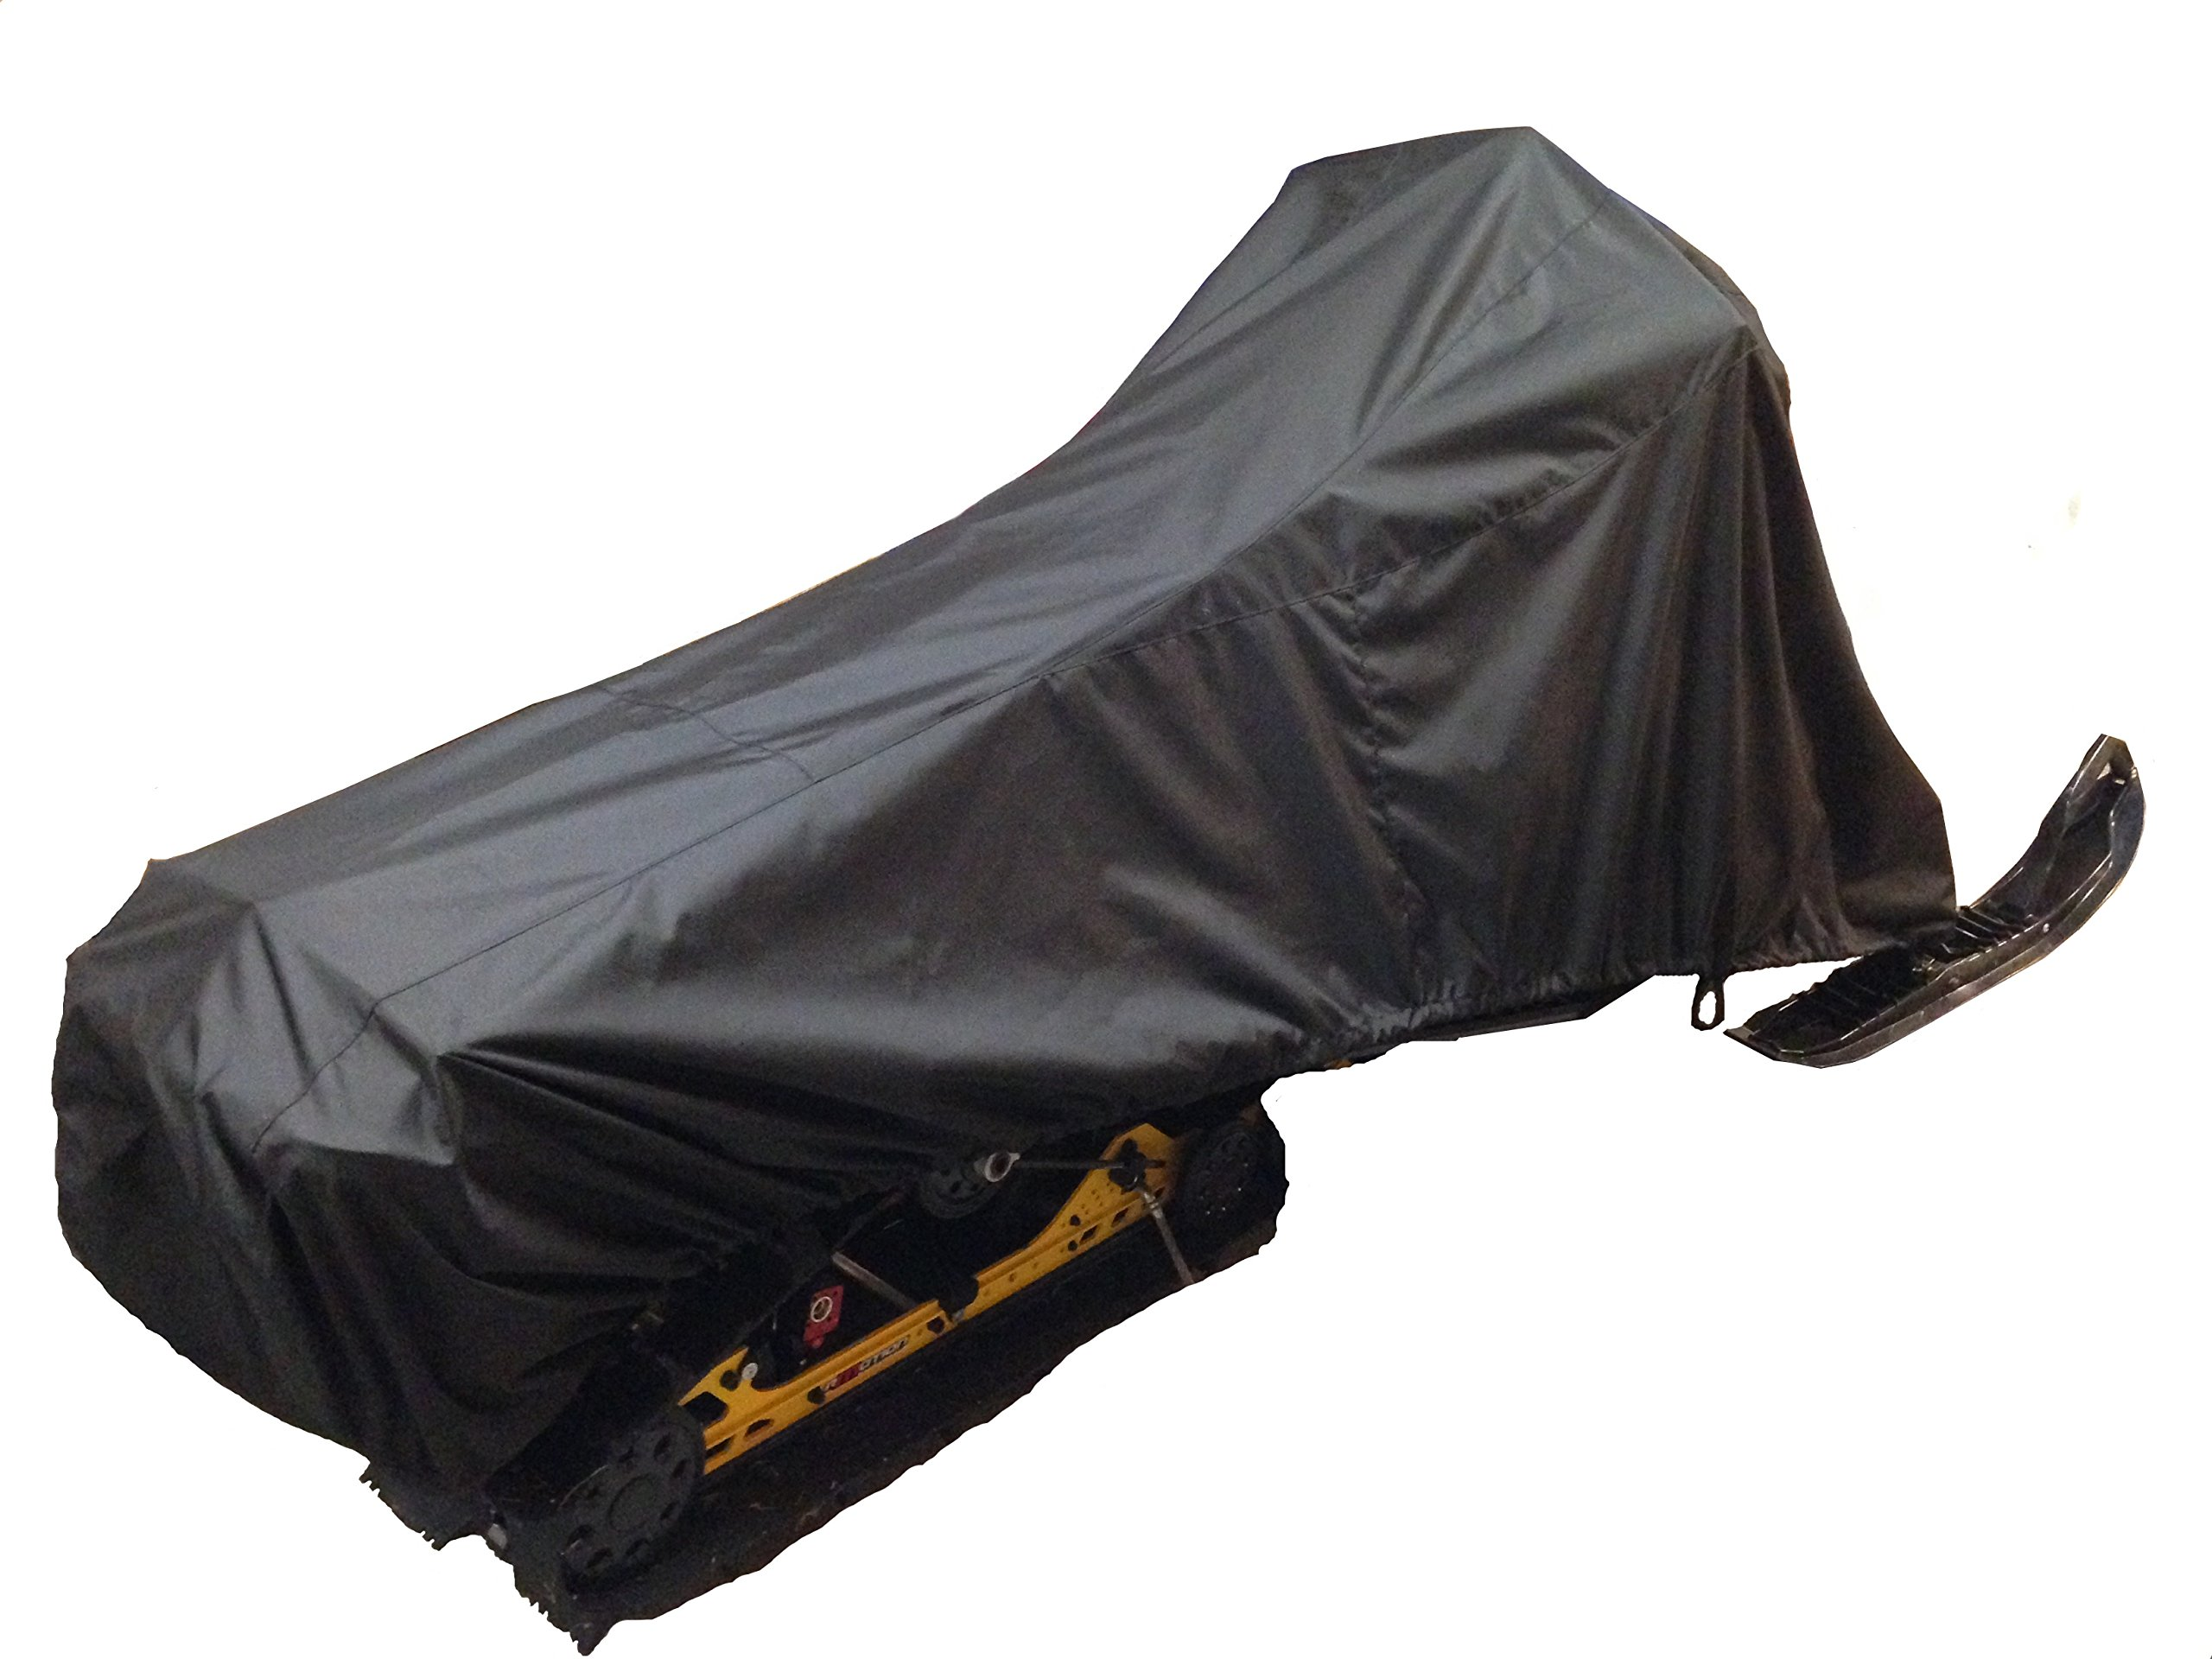 Snowmobile Cover 105'' - 125'' - Sunbrella by NorthStar (Image #2)